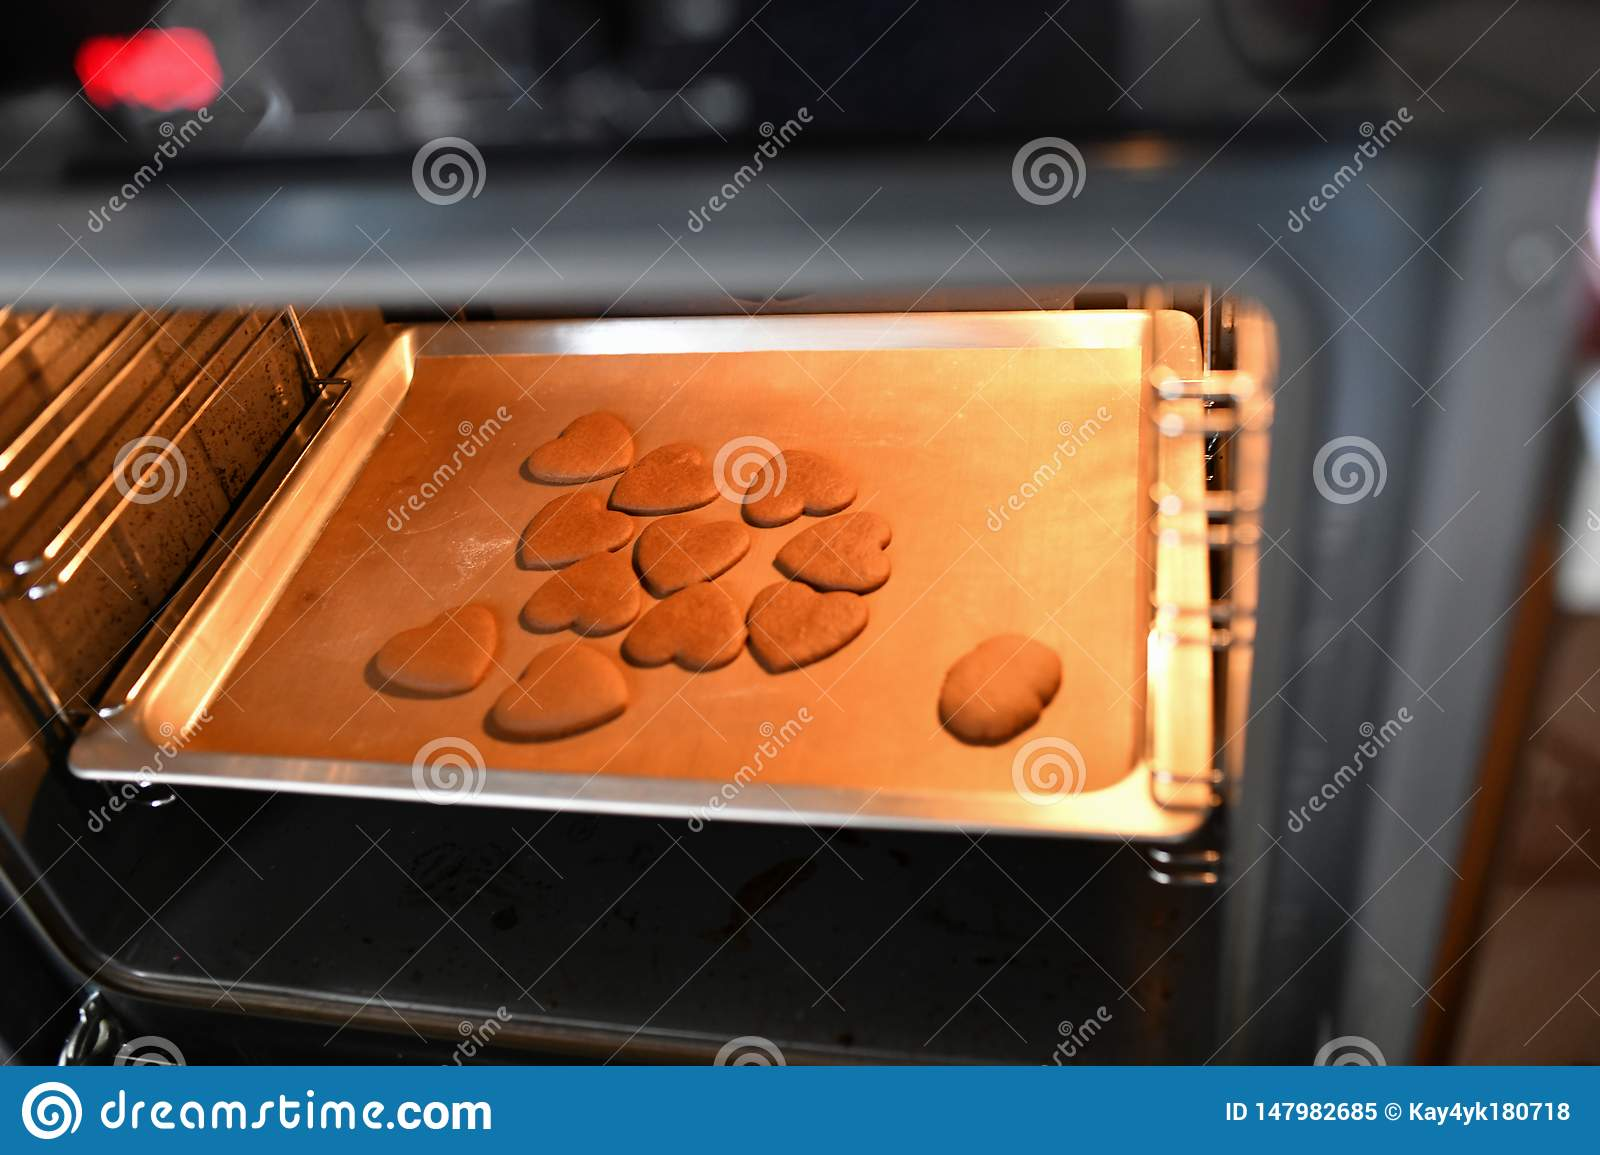 Heart Shaped Chocolate Chip Cookies In The Oven Cookies From Oven